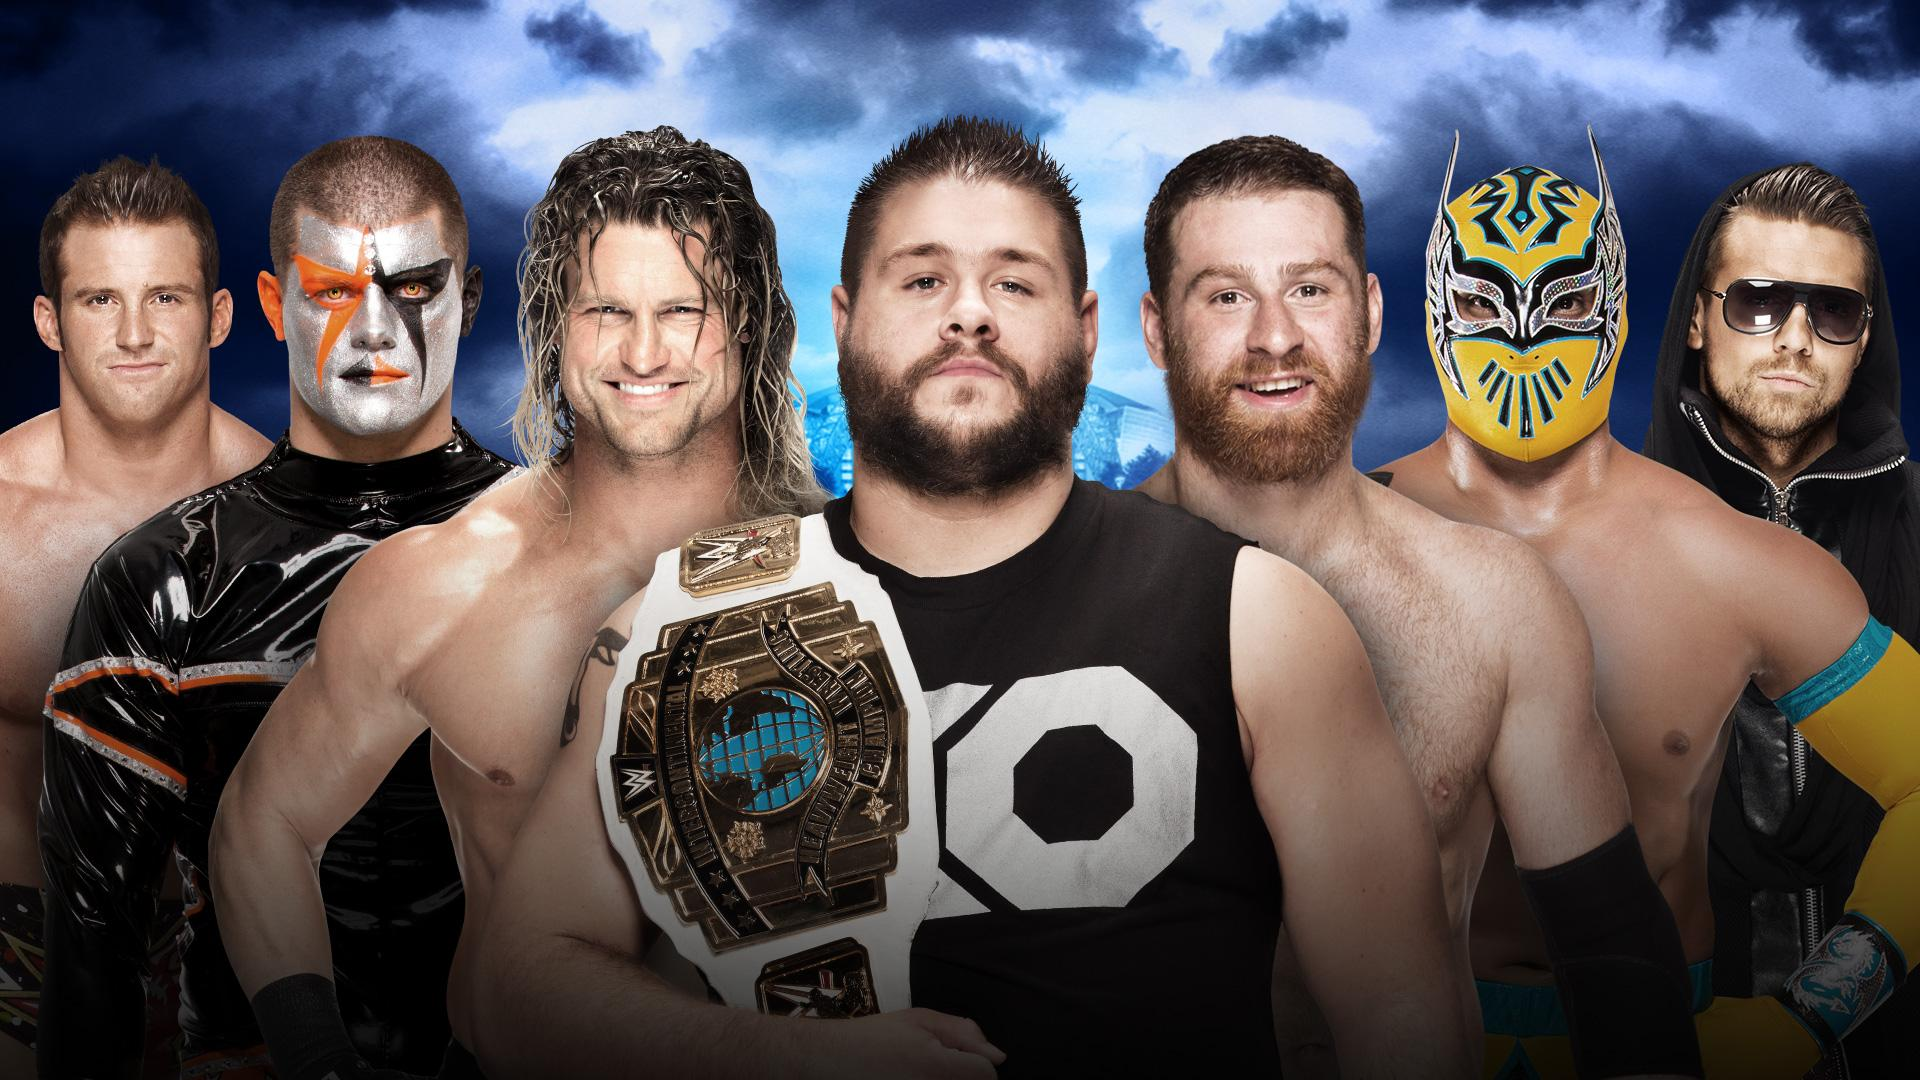 Intercontinental Champion Kevin Owens vs Sami Zayn vs Dolph Ziggler vs Zack Ryder vs Sin Cara vs The Miz vs Stardust